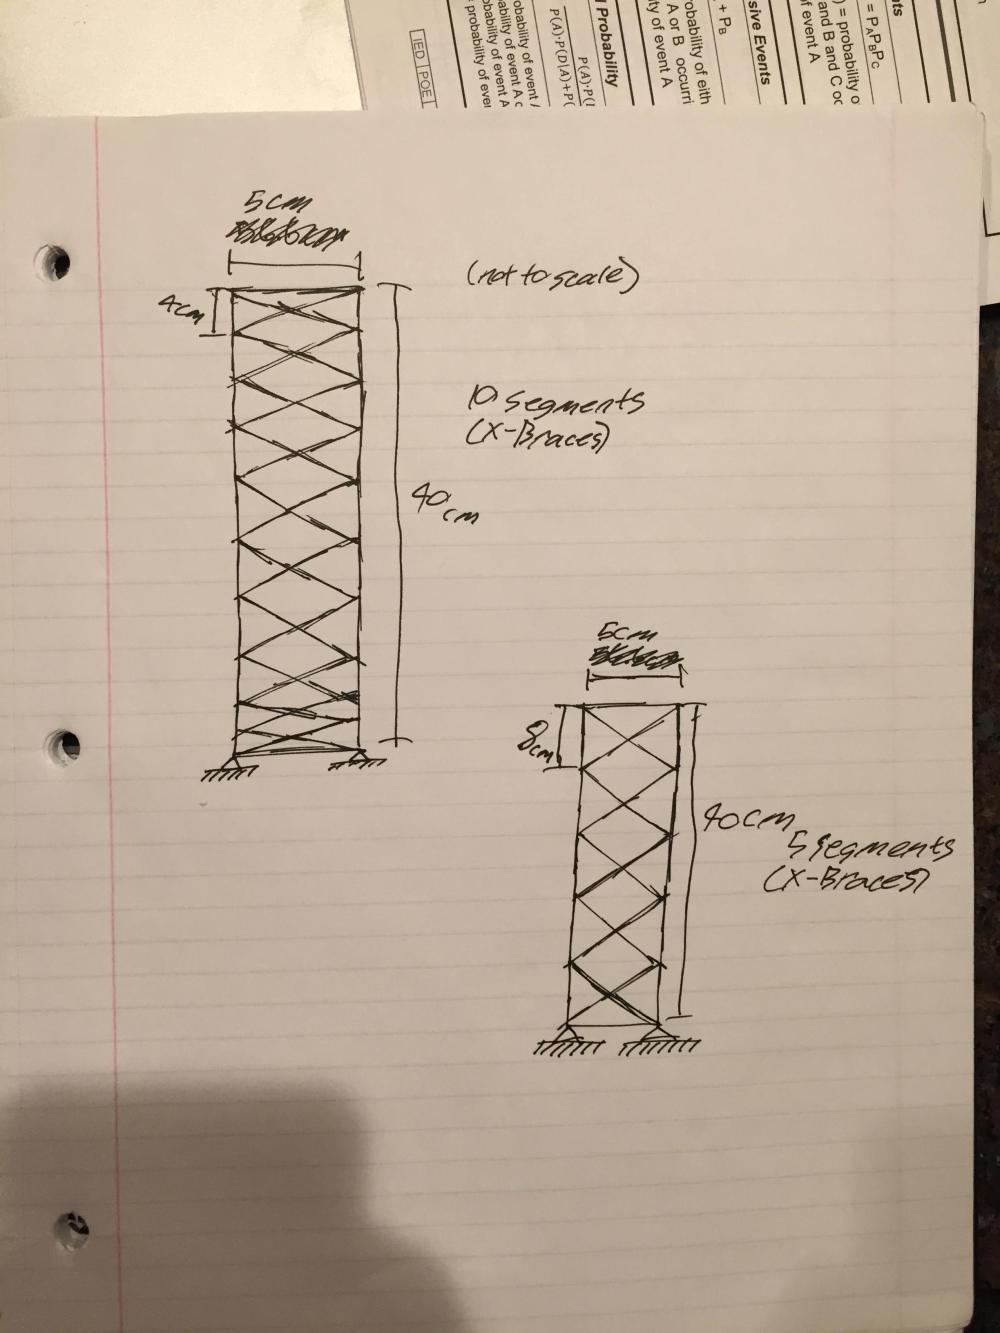 medium resolution of how does the number of braces in a balsa wood tower affect the load capacity